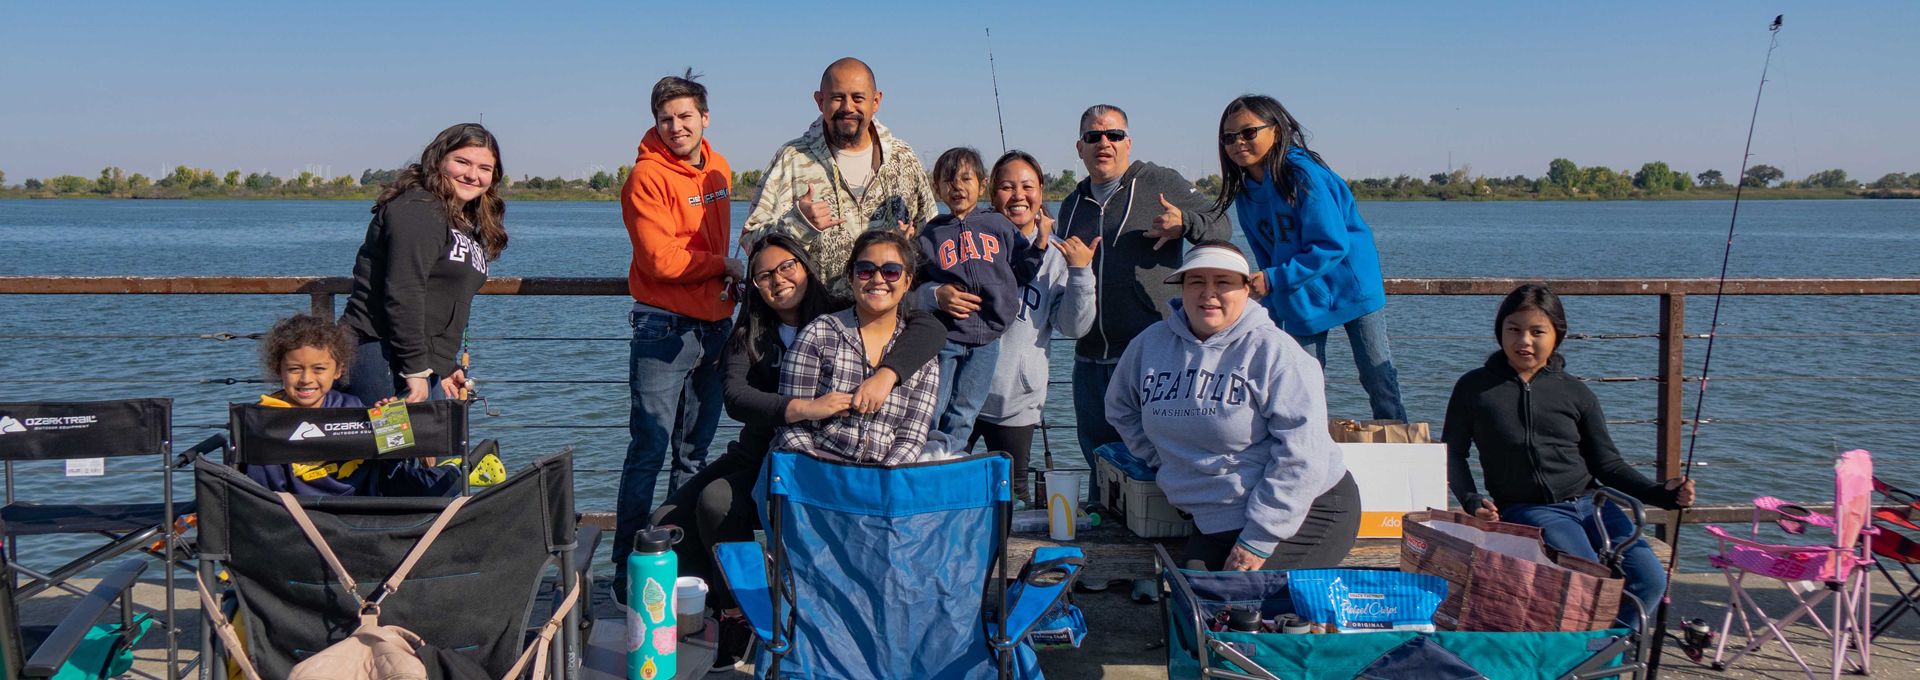 antioch fishing derby 19